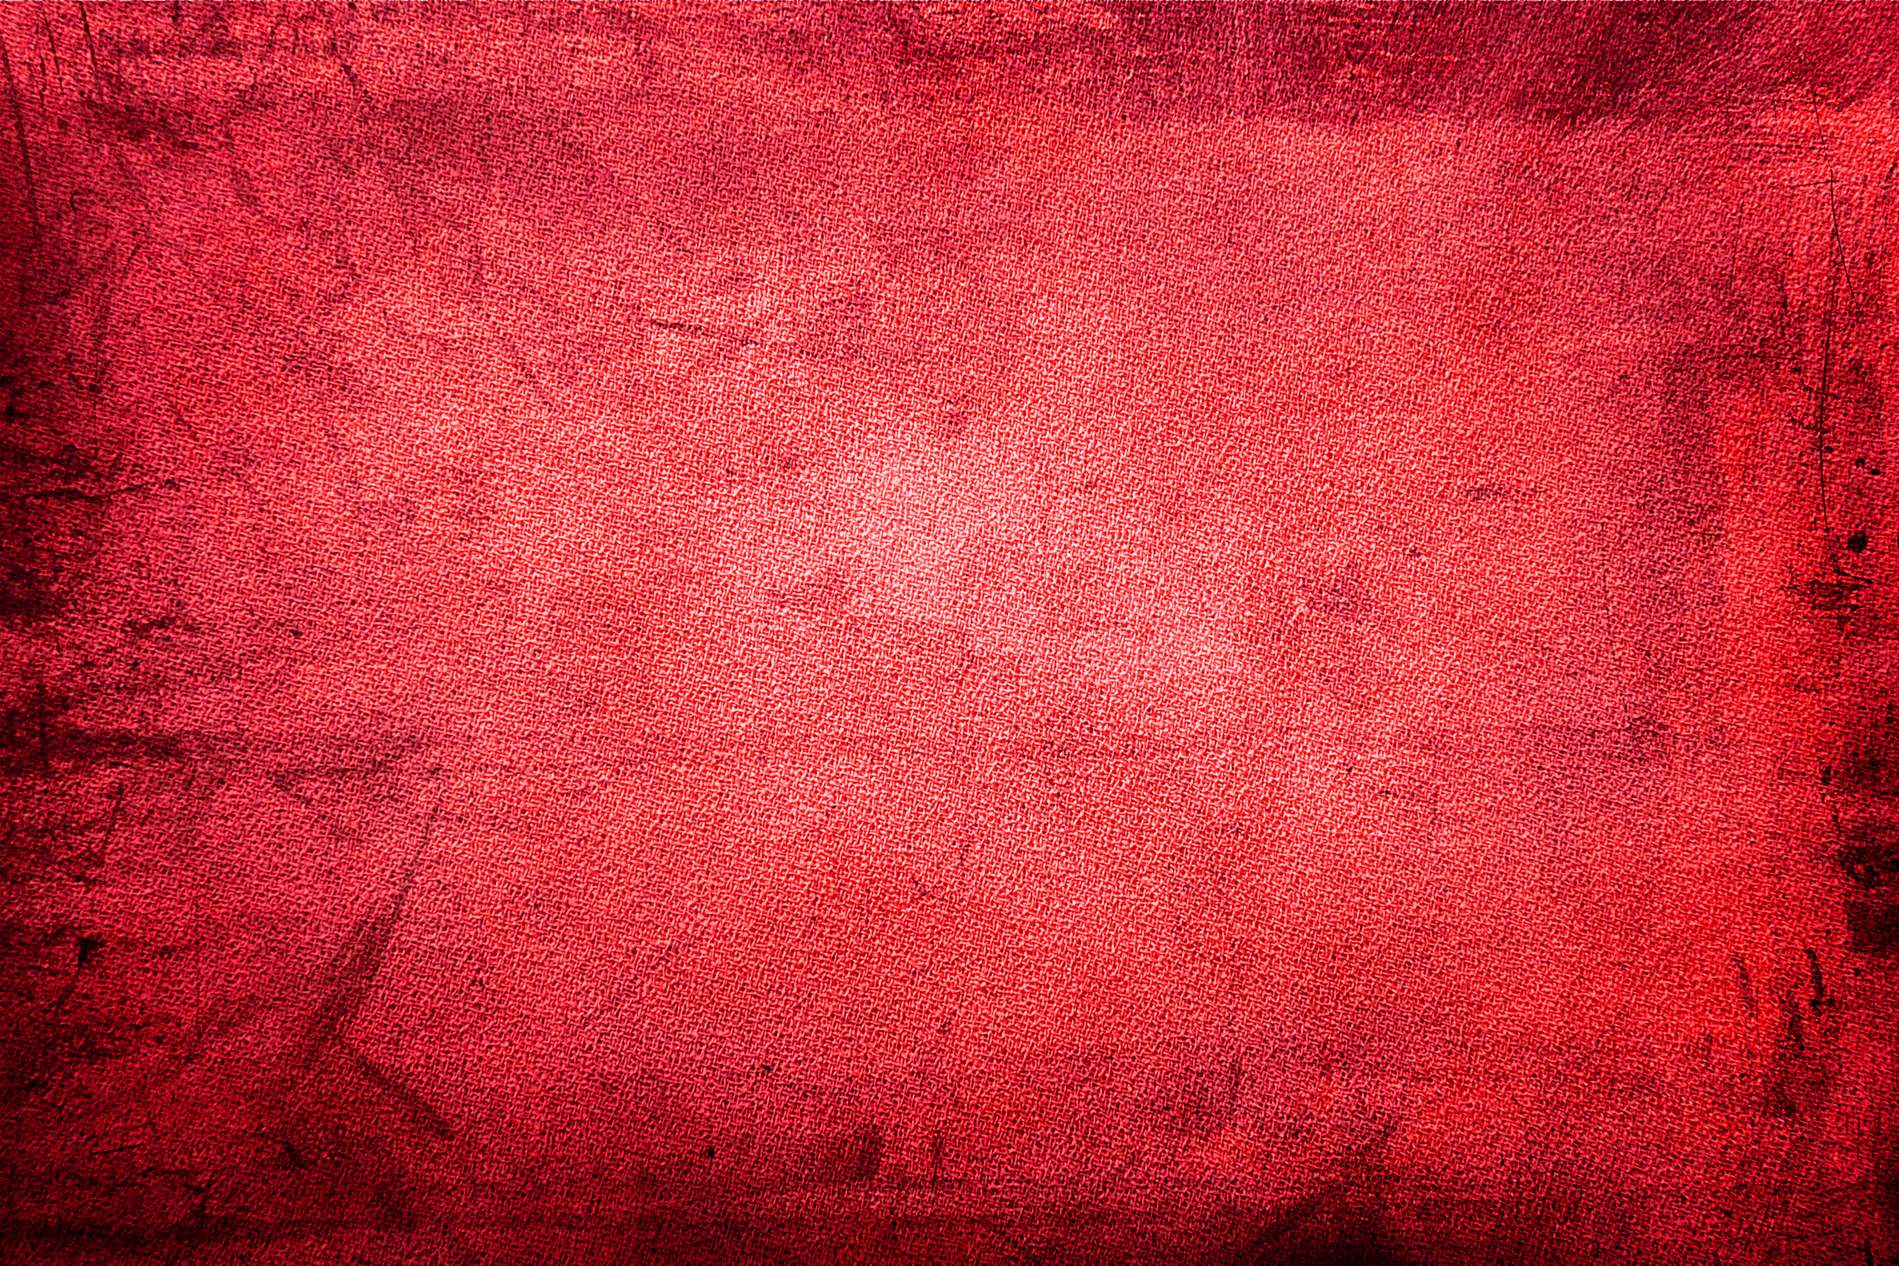 Red Grunge Fabric Texture Background